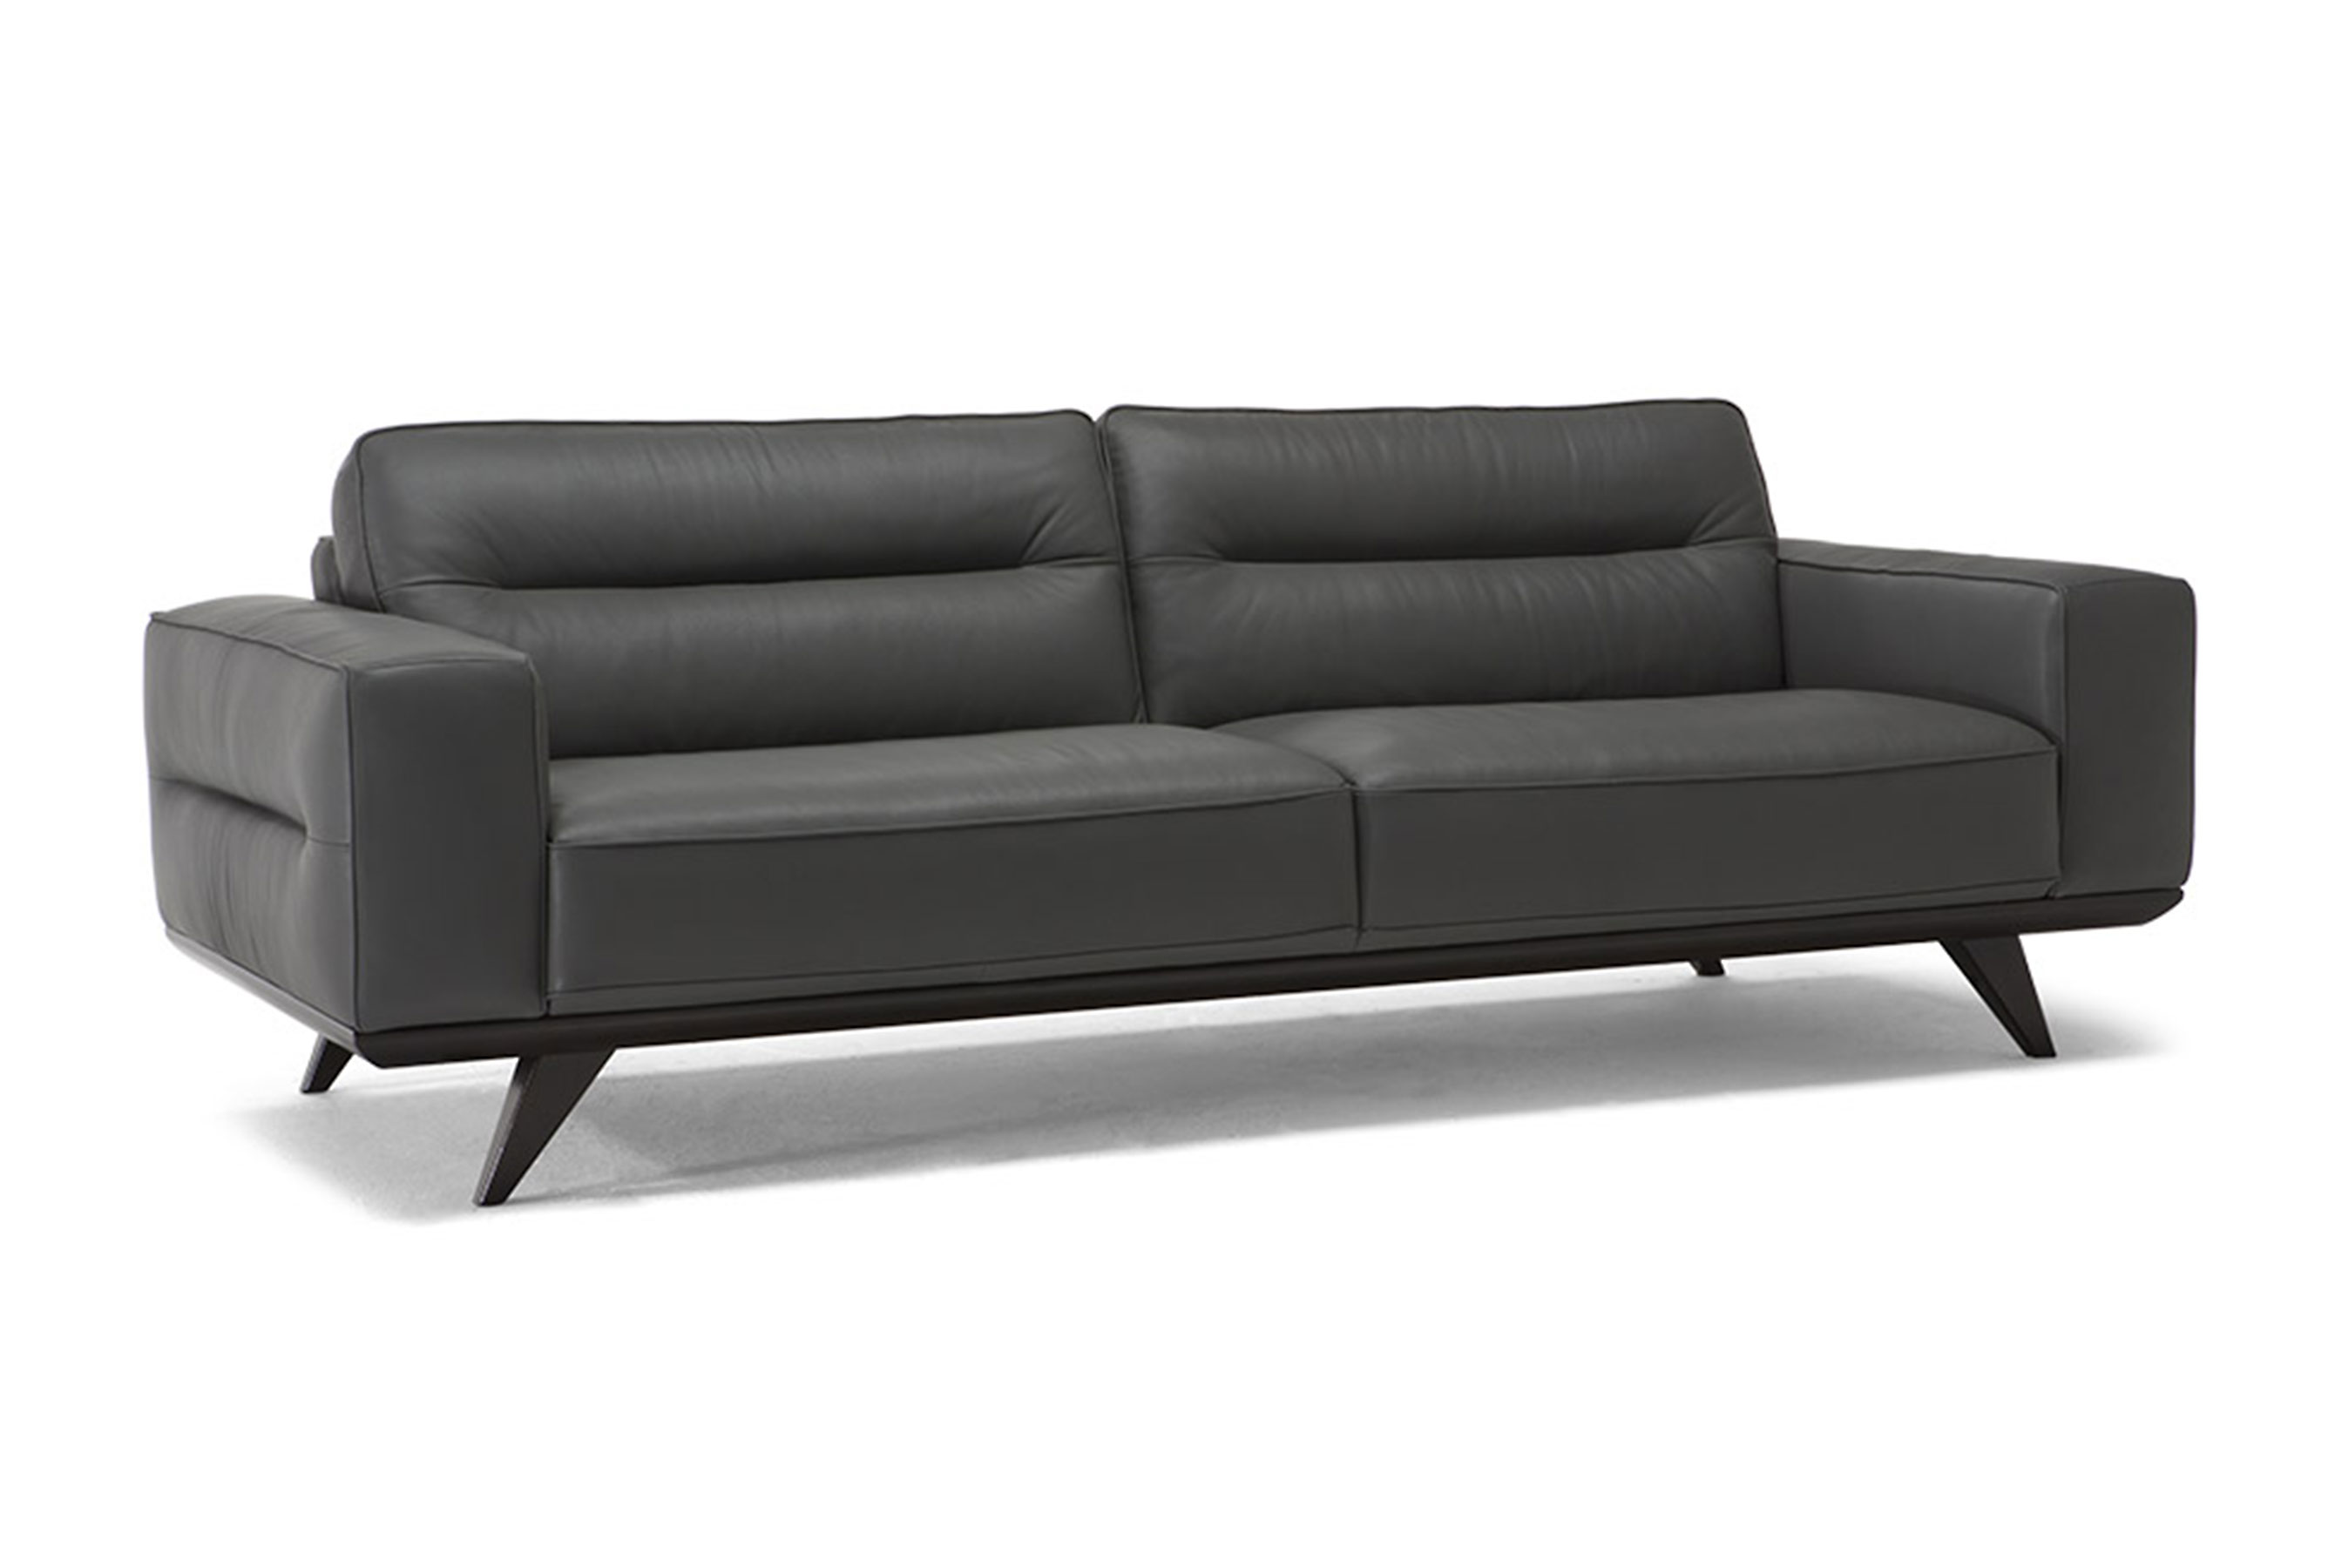 Astonishing Adrenalina C006 100 Top Grain Leather Sofa Sofas And Caraccident5 Cool Chair Designs And Ideas Caraccident5Info